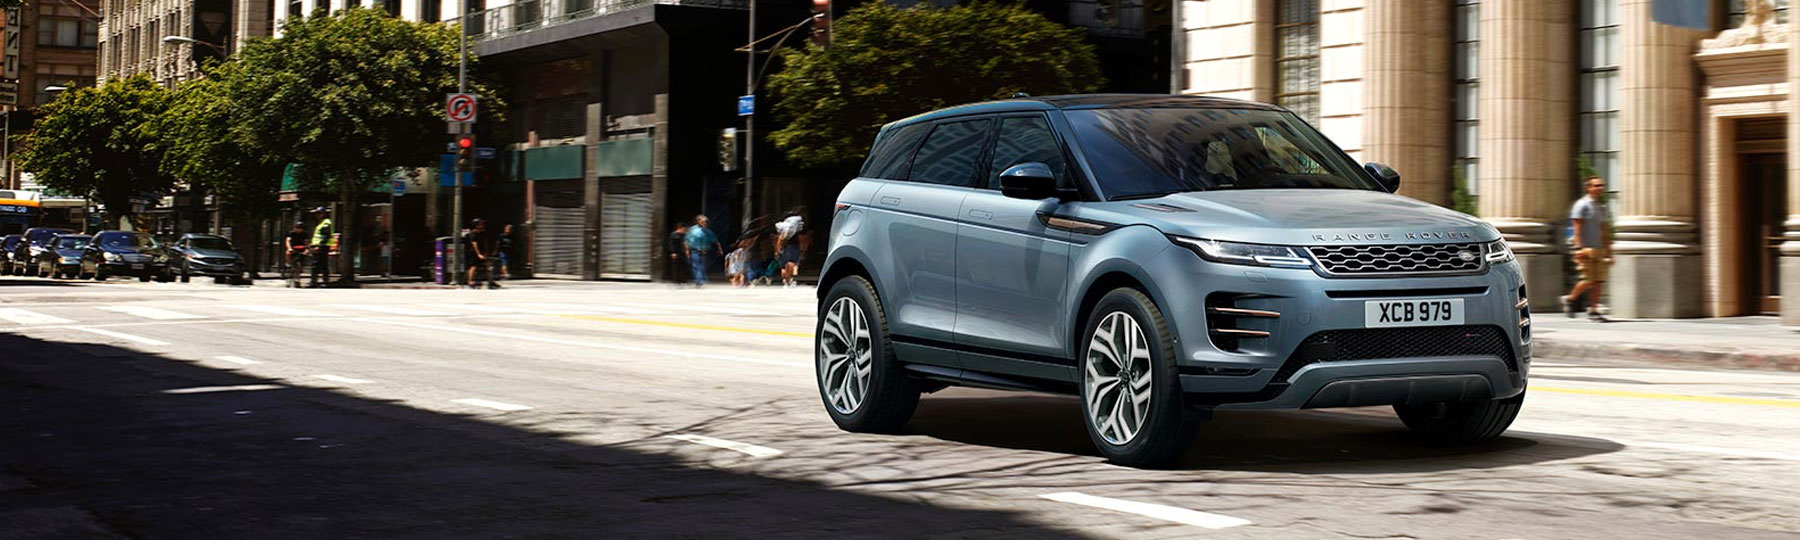 land rover Range Rover Evoque Personal Contract Hire Offer